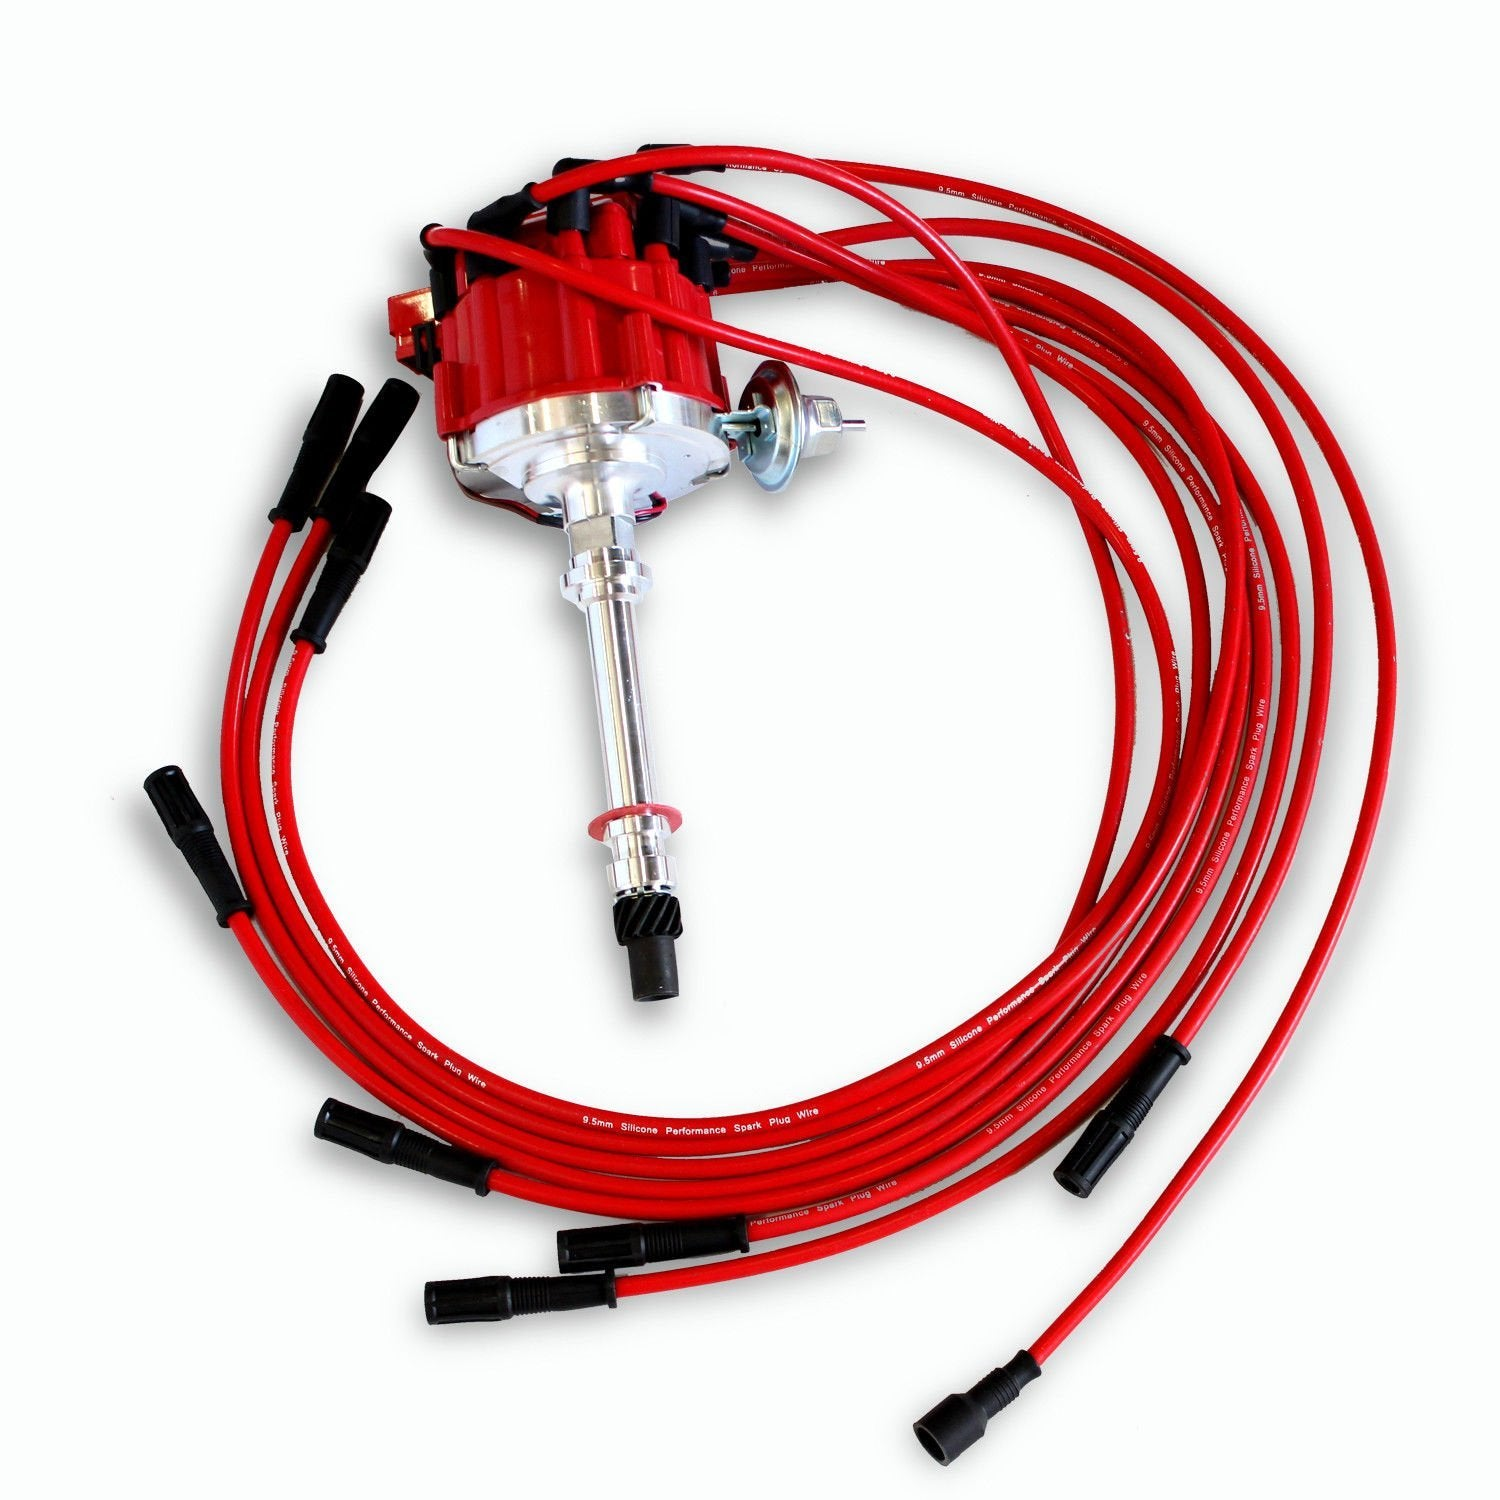 4 Wire Chevy Distributor Wiring Harness Reveolution Of Gm Hei Pin Ignition Module Diagram For Sbc 350 Bbc 454 9 5mm Straight Spark Rh Demotoring Com 1984 87